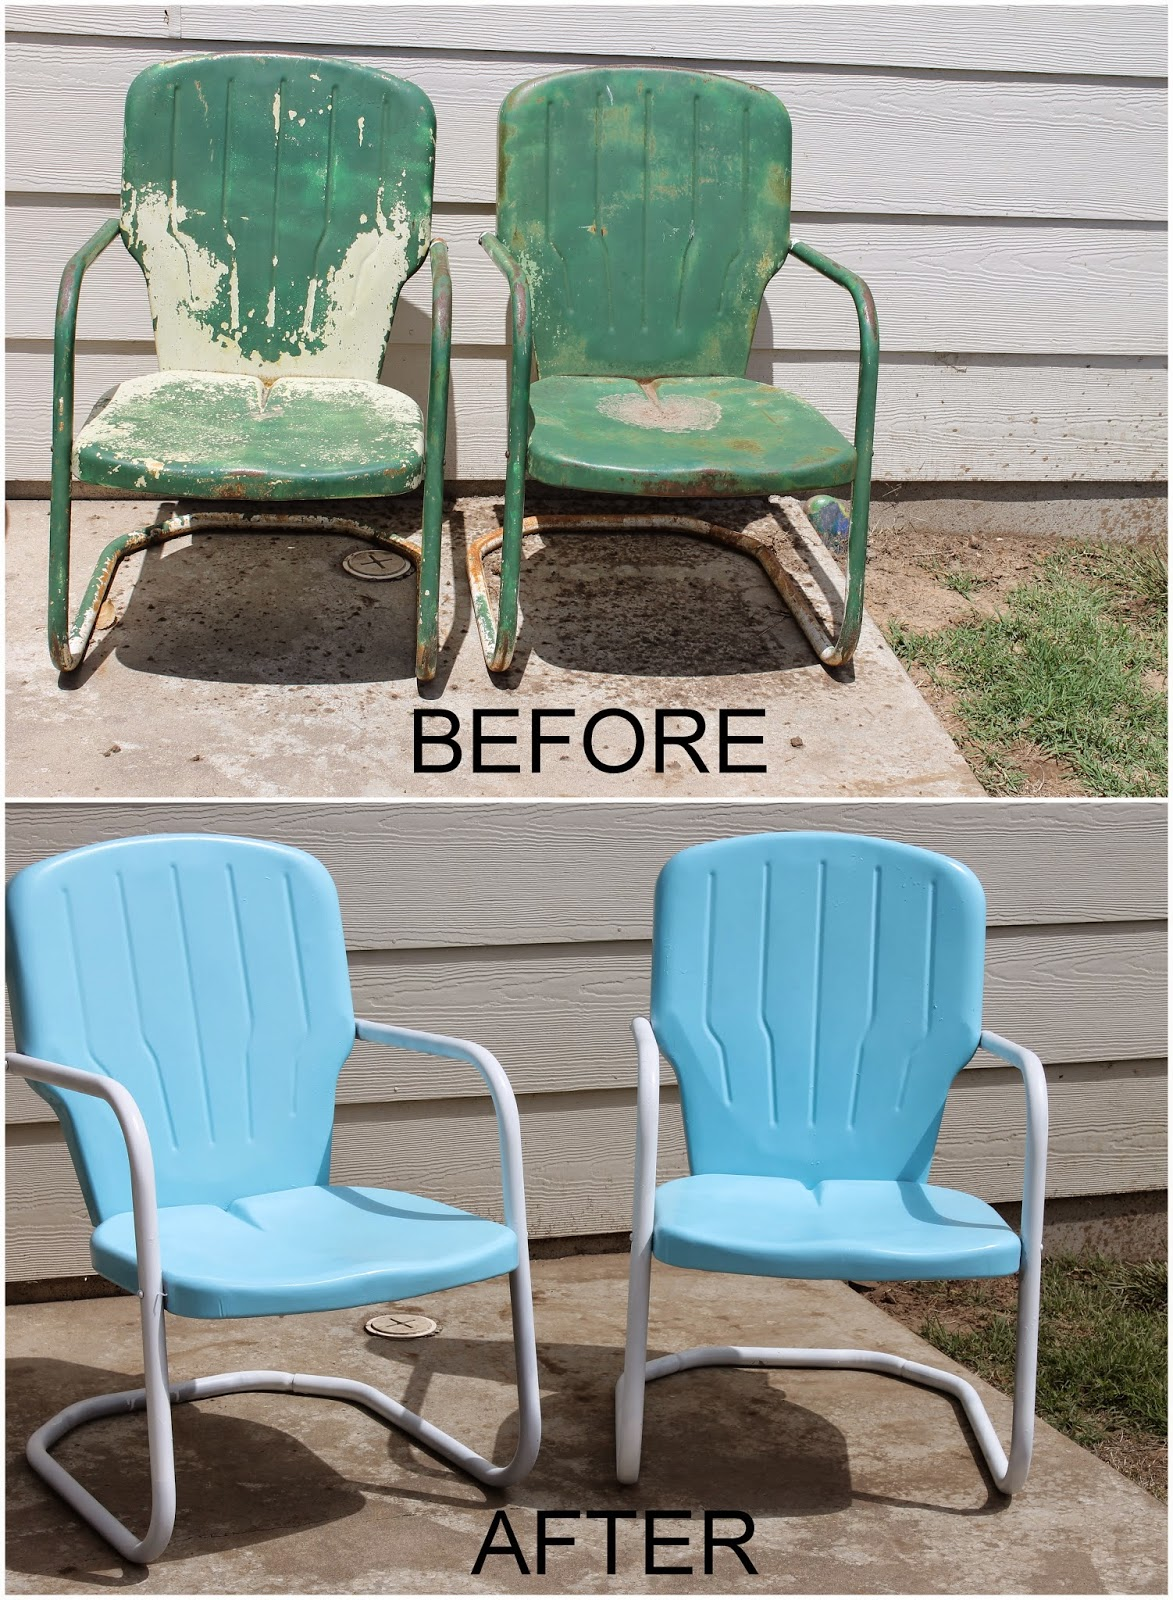 Repaint Old Metal Patio Chairs Diy Paint Outdoor Metal